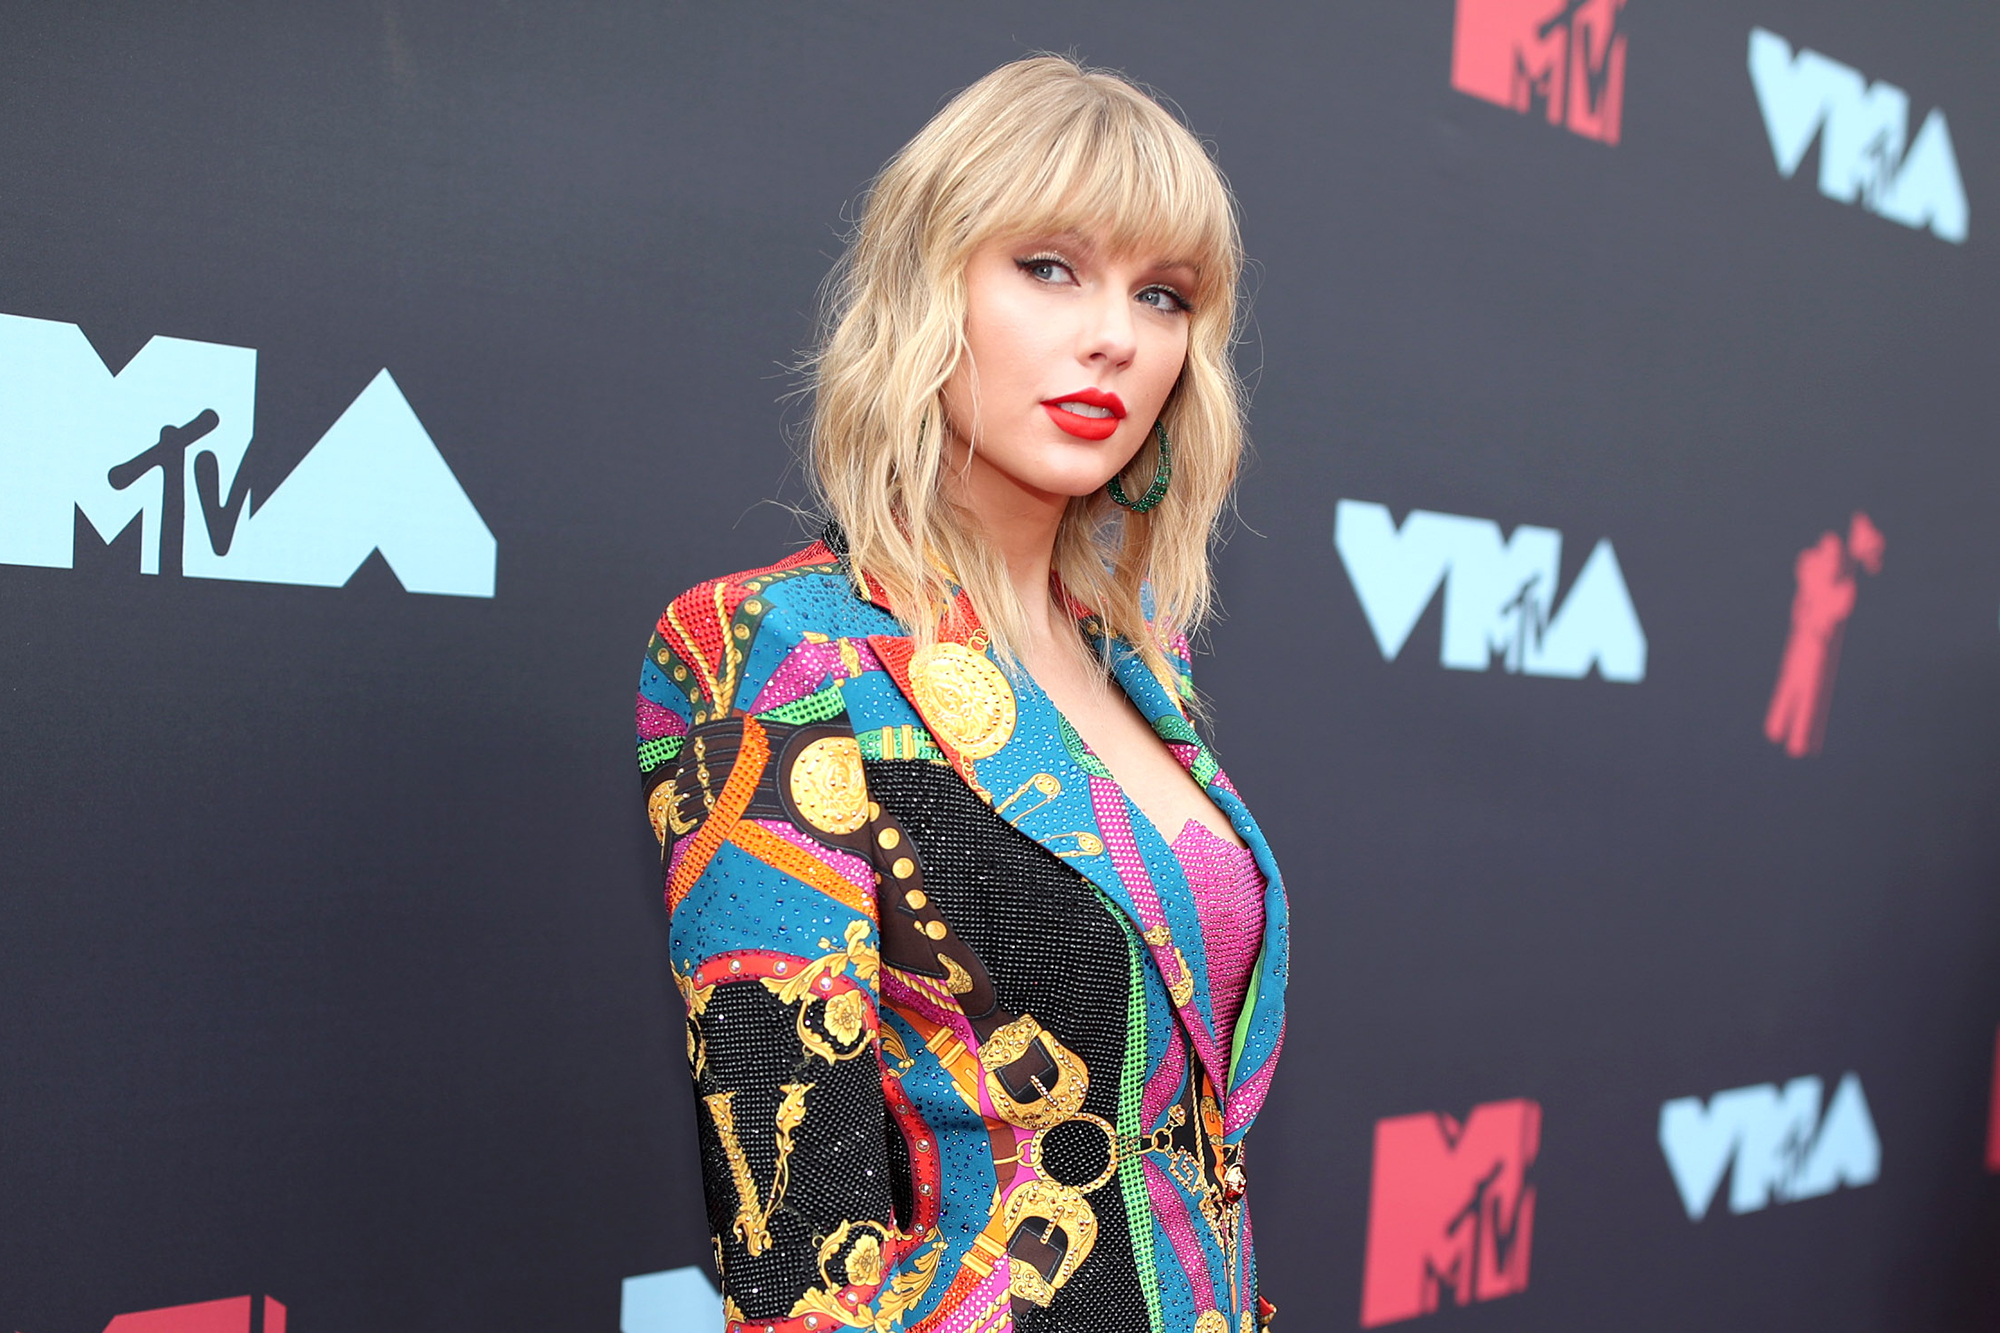 Taylor Swift Can Perform Her Old Hits at AMAs 2019, Agreement Reached